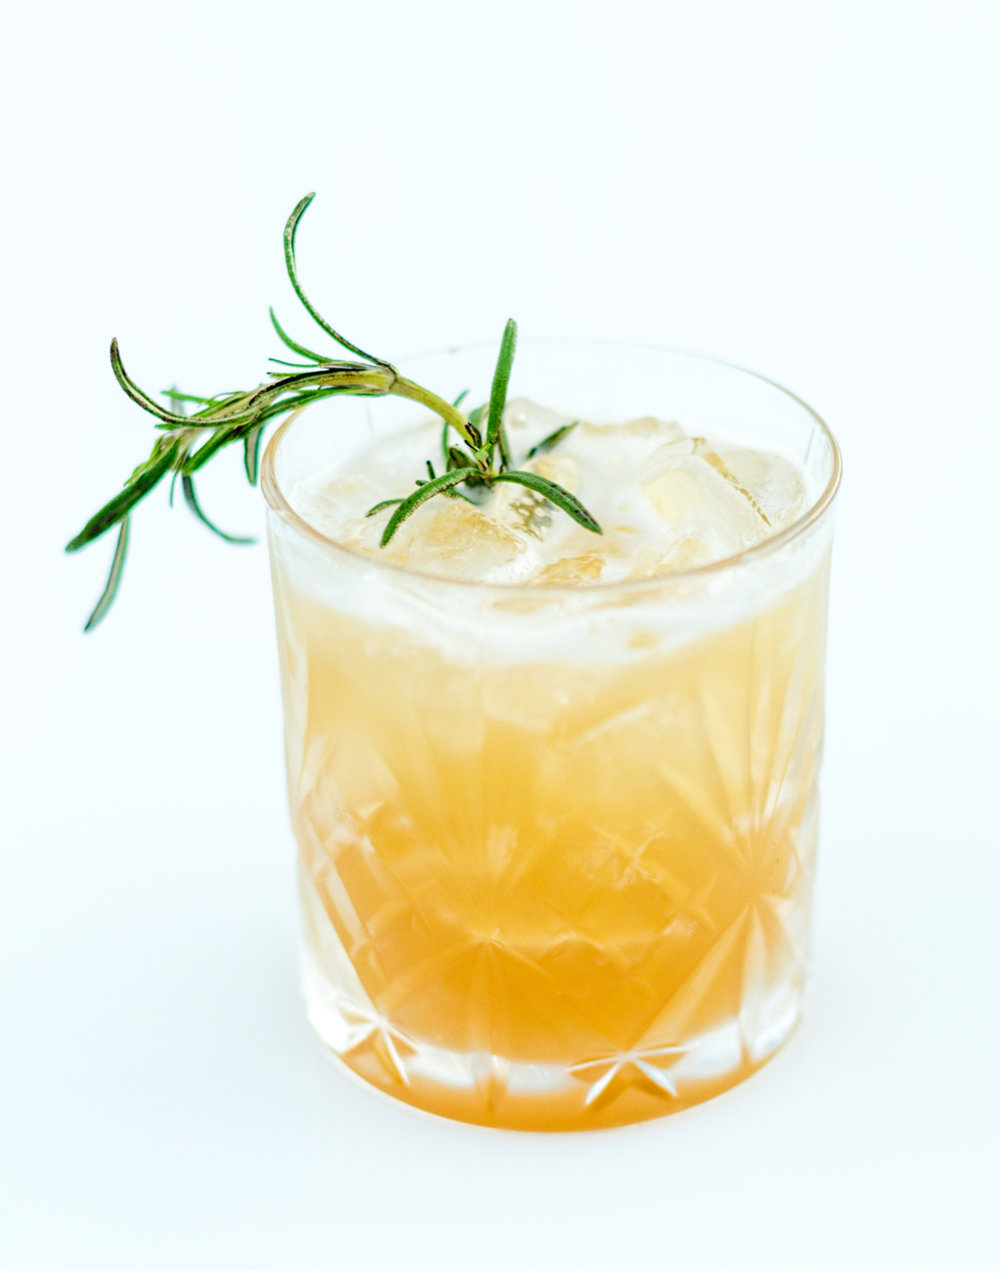 Libations by Thierry Isambert - Smoking Rosemary & Maple [Macallan Scotch Whisky, Maple Simple Syrup, Lemon, Burning Rosemary]